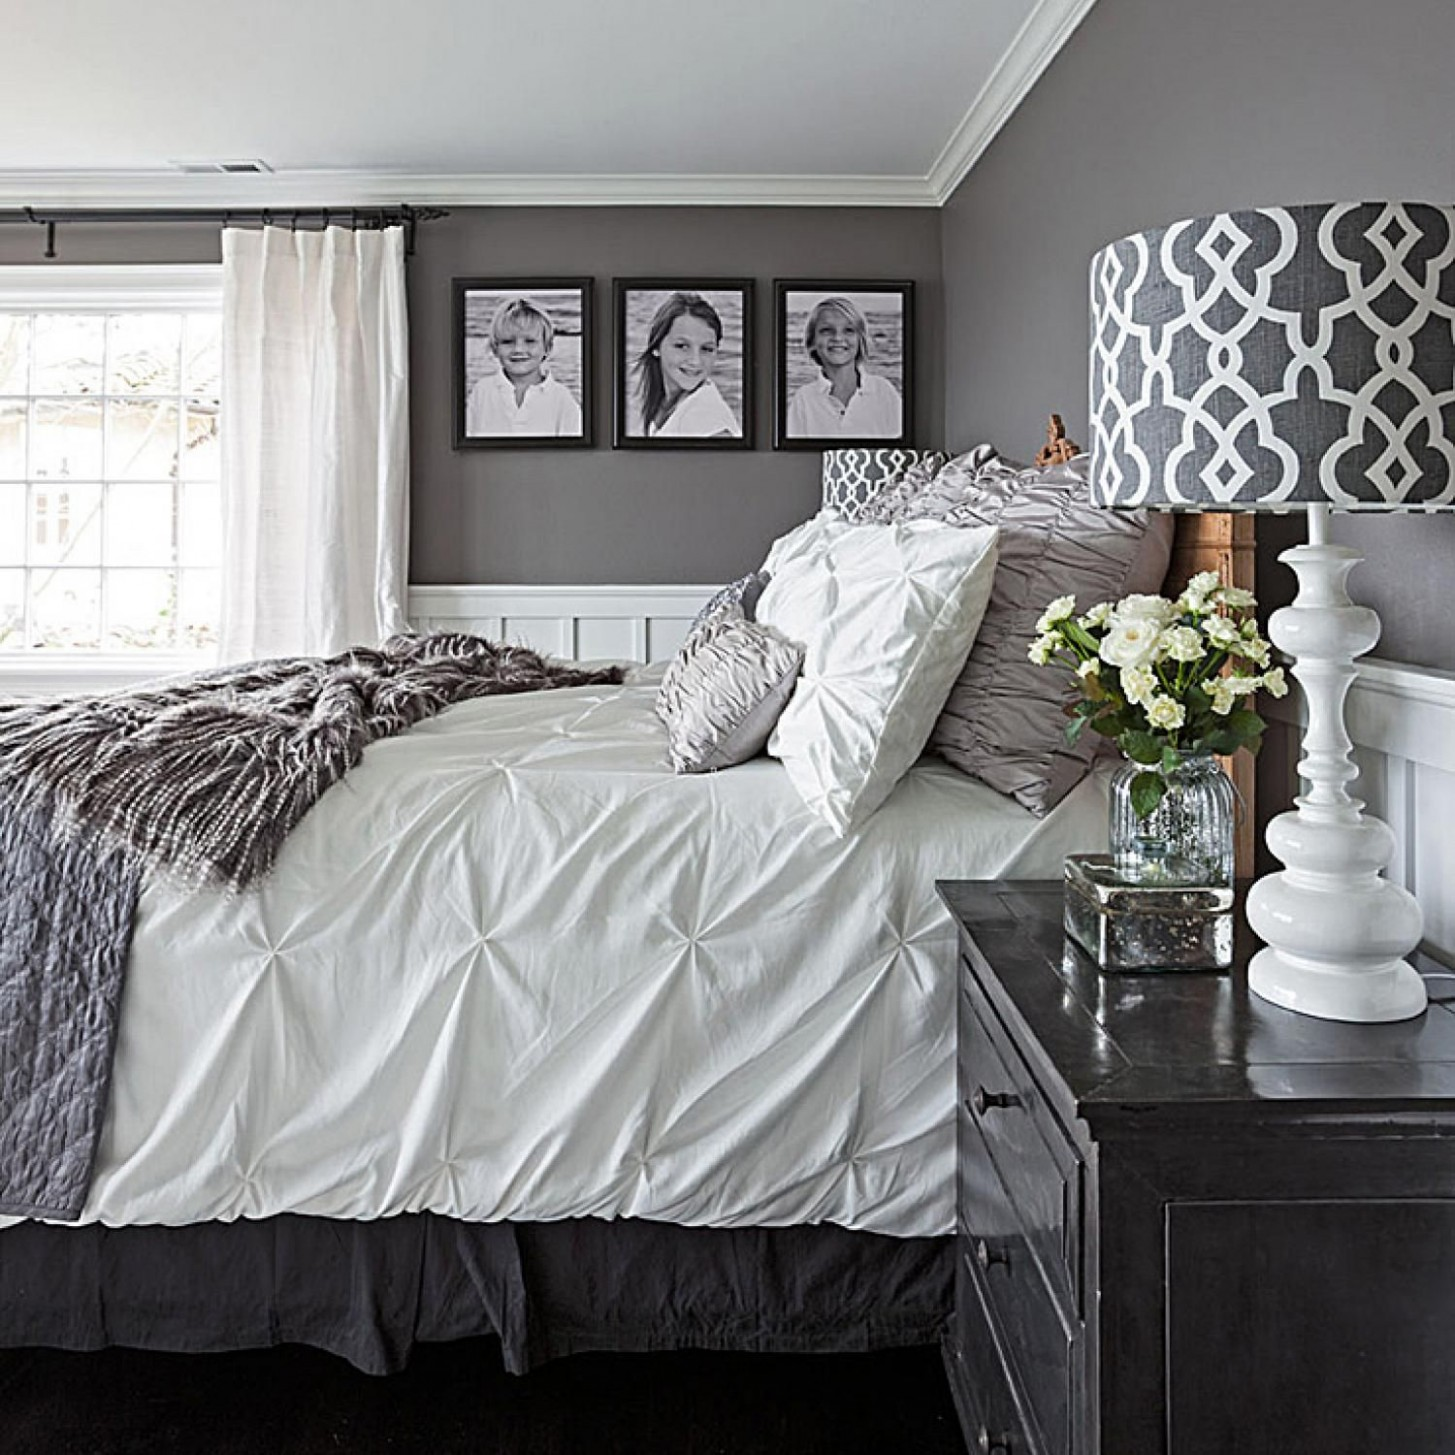 Pin on Apartment Decor Ideas - Bedroom Ideas Grey And White